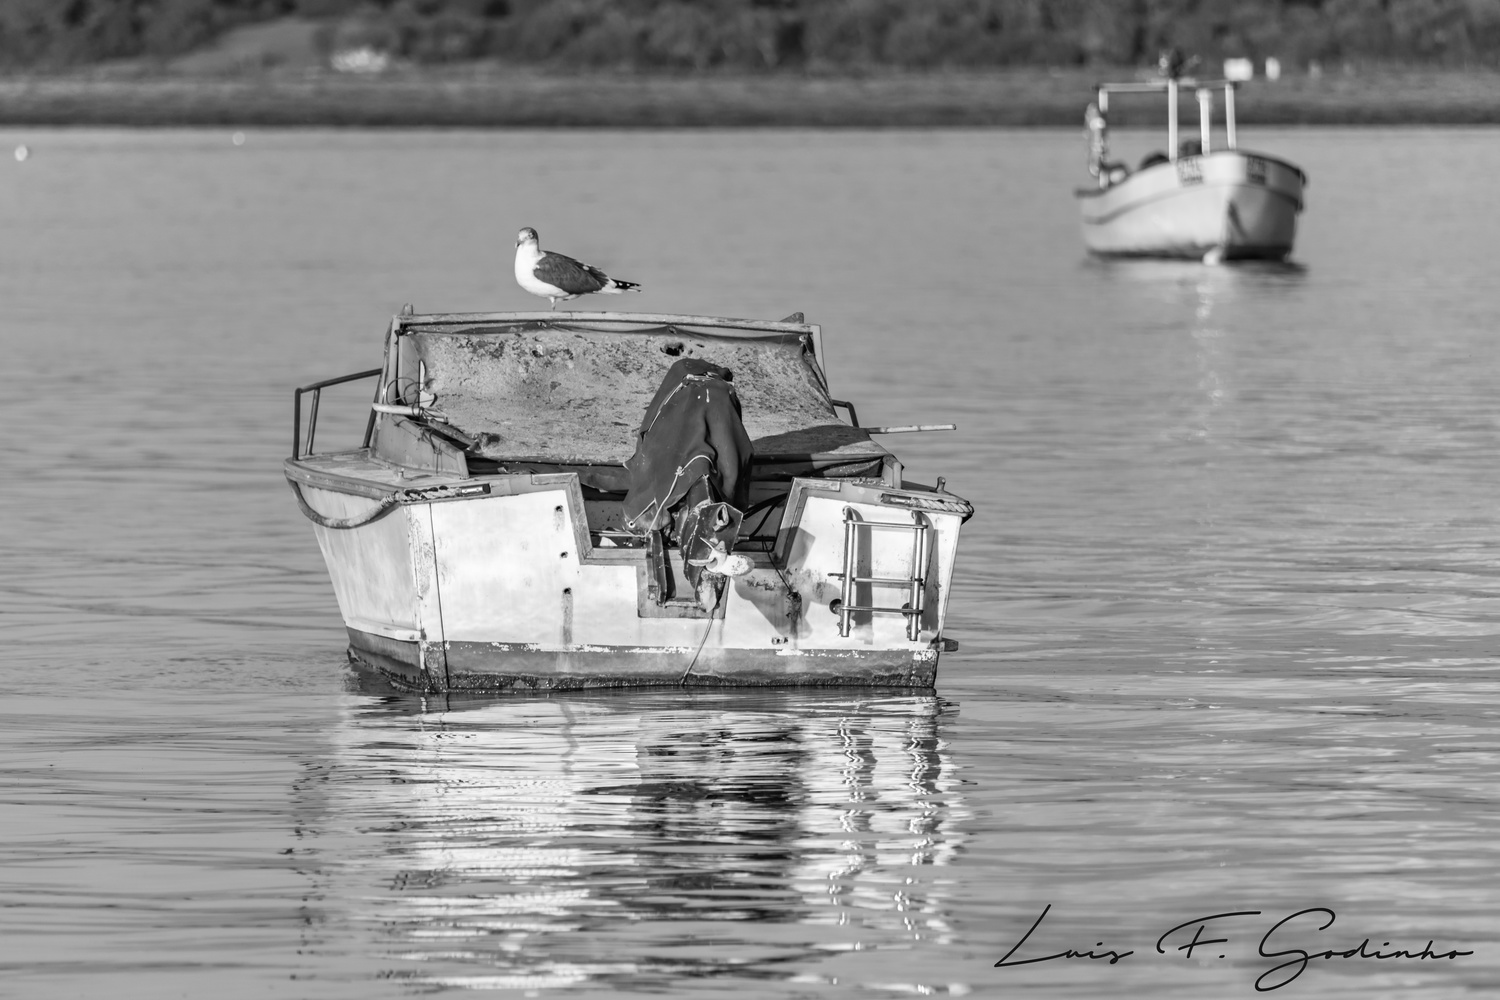 boat with a seagull by Luis F Godinho